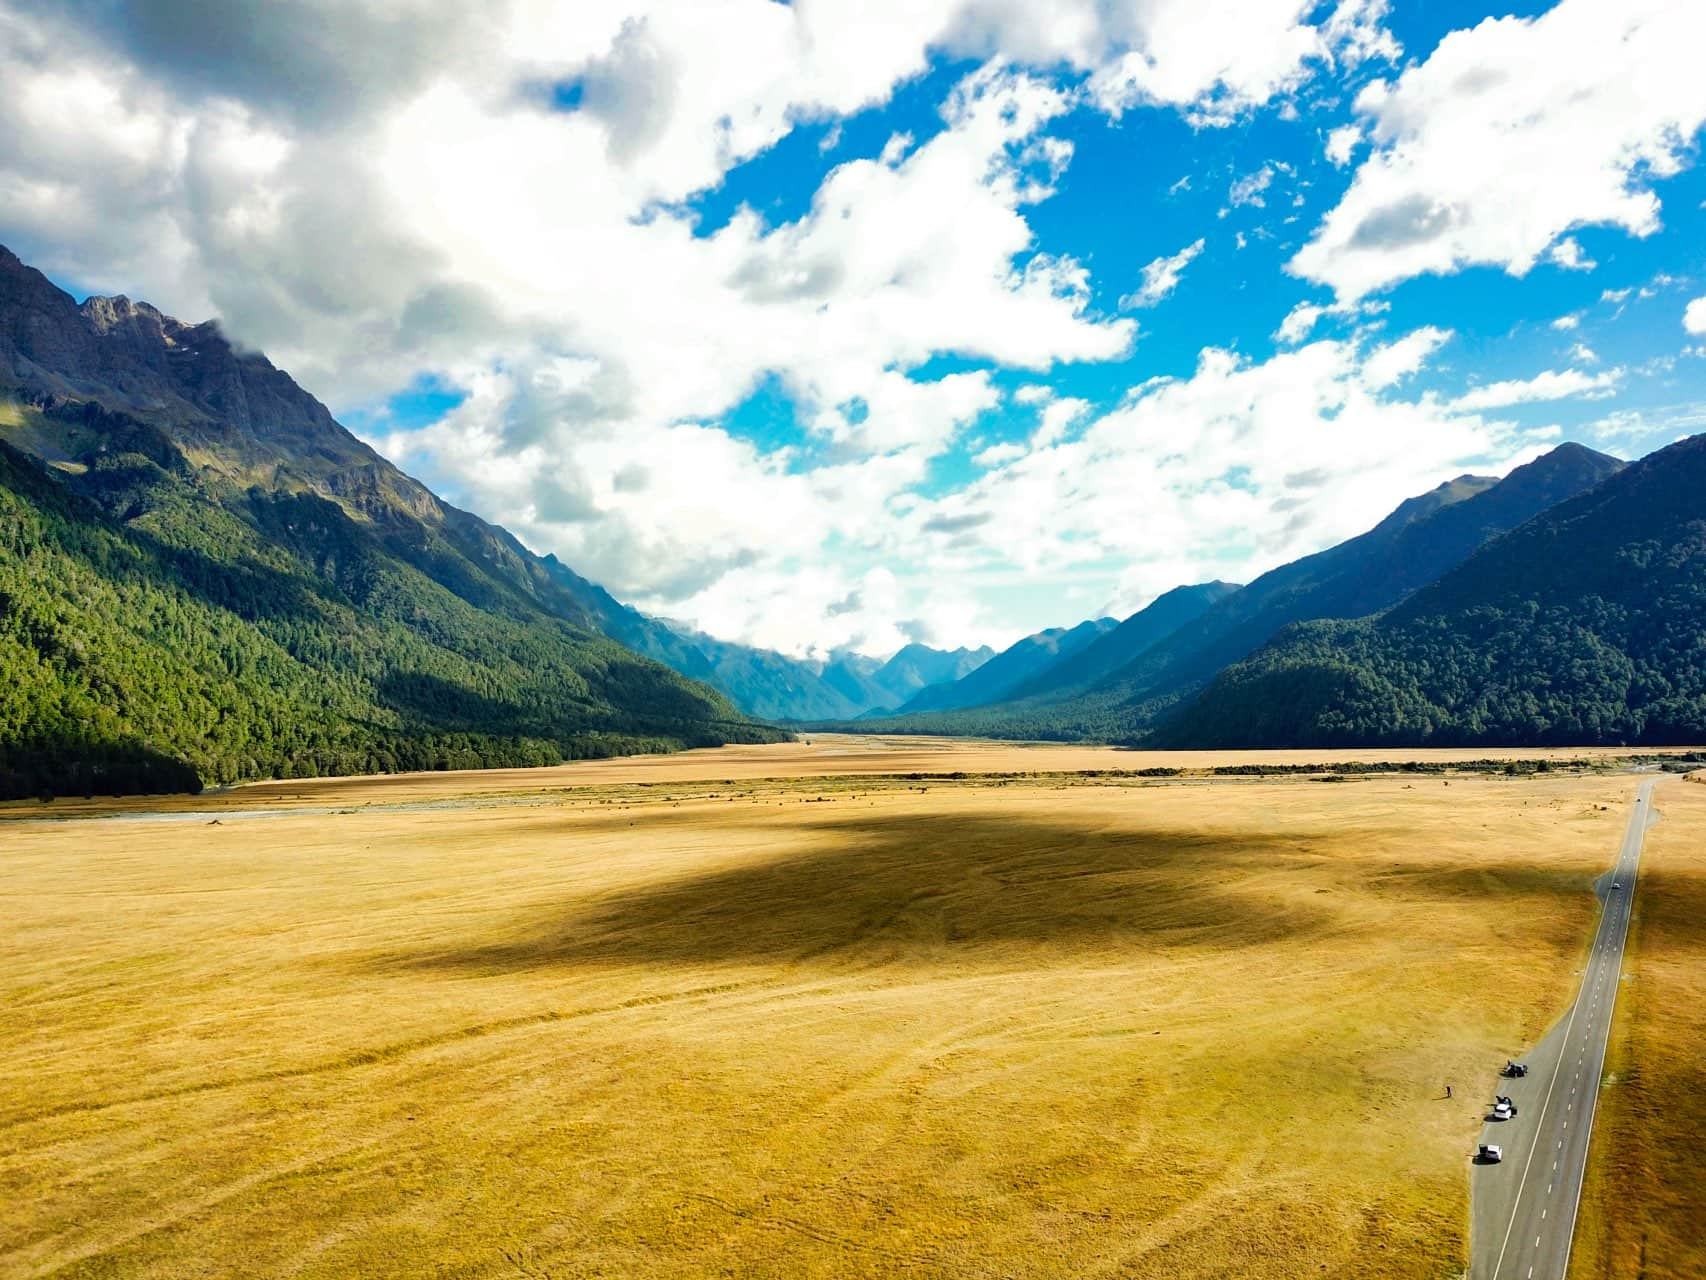 Fiordland-National-Park-Te-Anau-Milford-Highway-Southland-DJI-Mavic-Pro-Air-capture